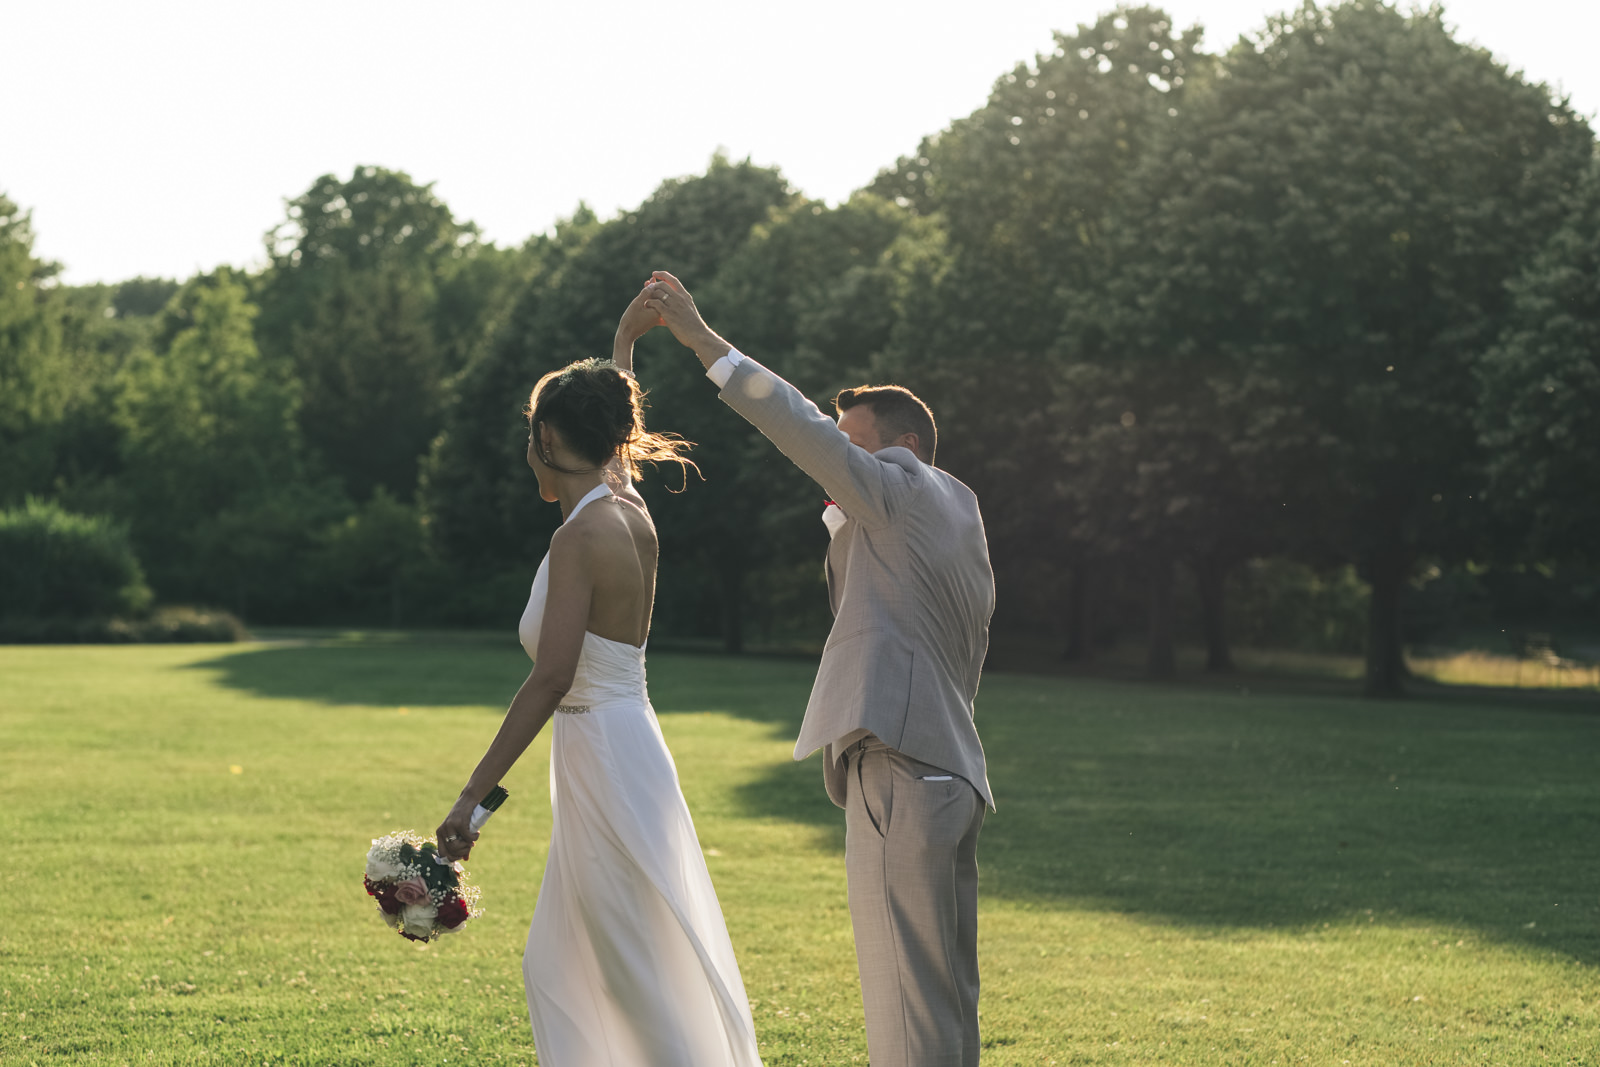 Bride and groom dance in a field after their wedding reception.